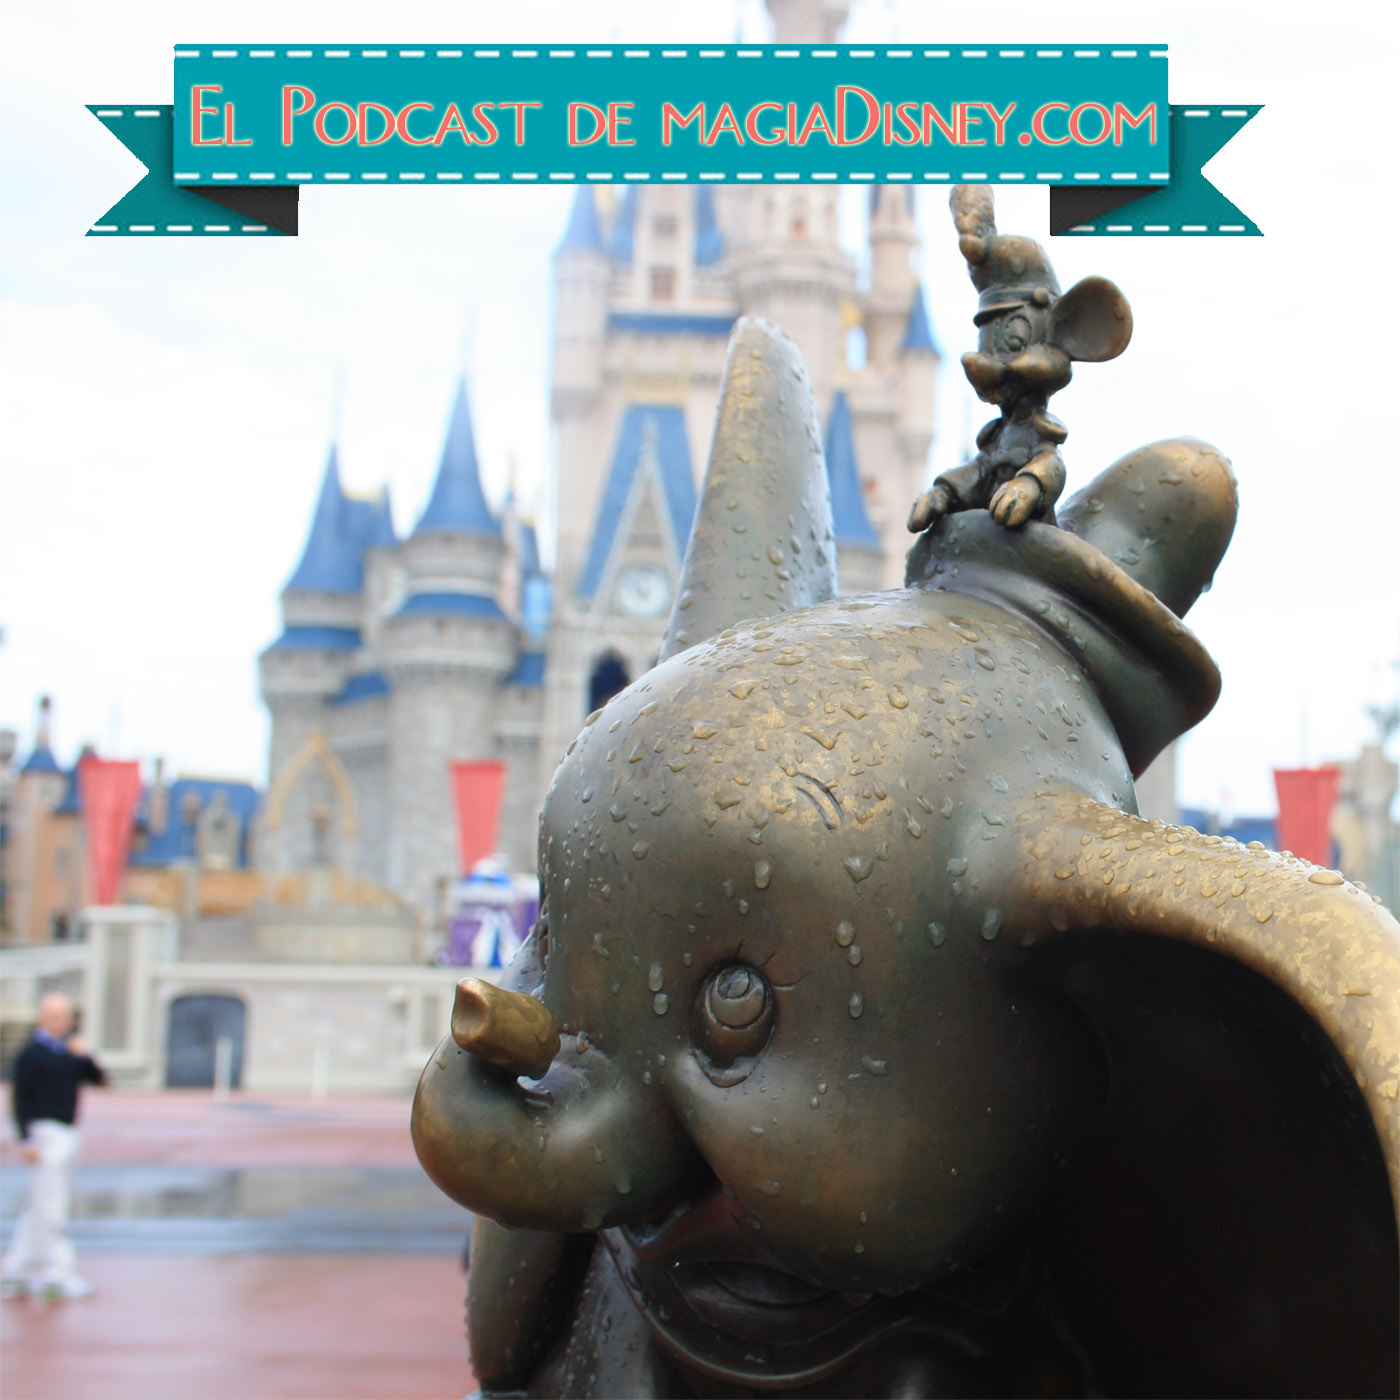 El Podcast de MagiaDisney.com